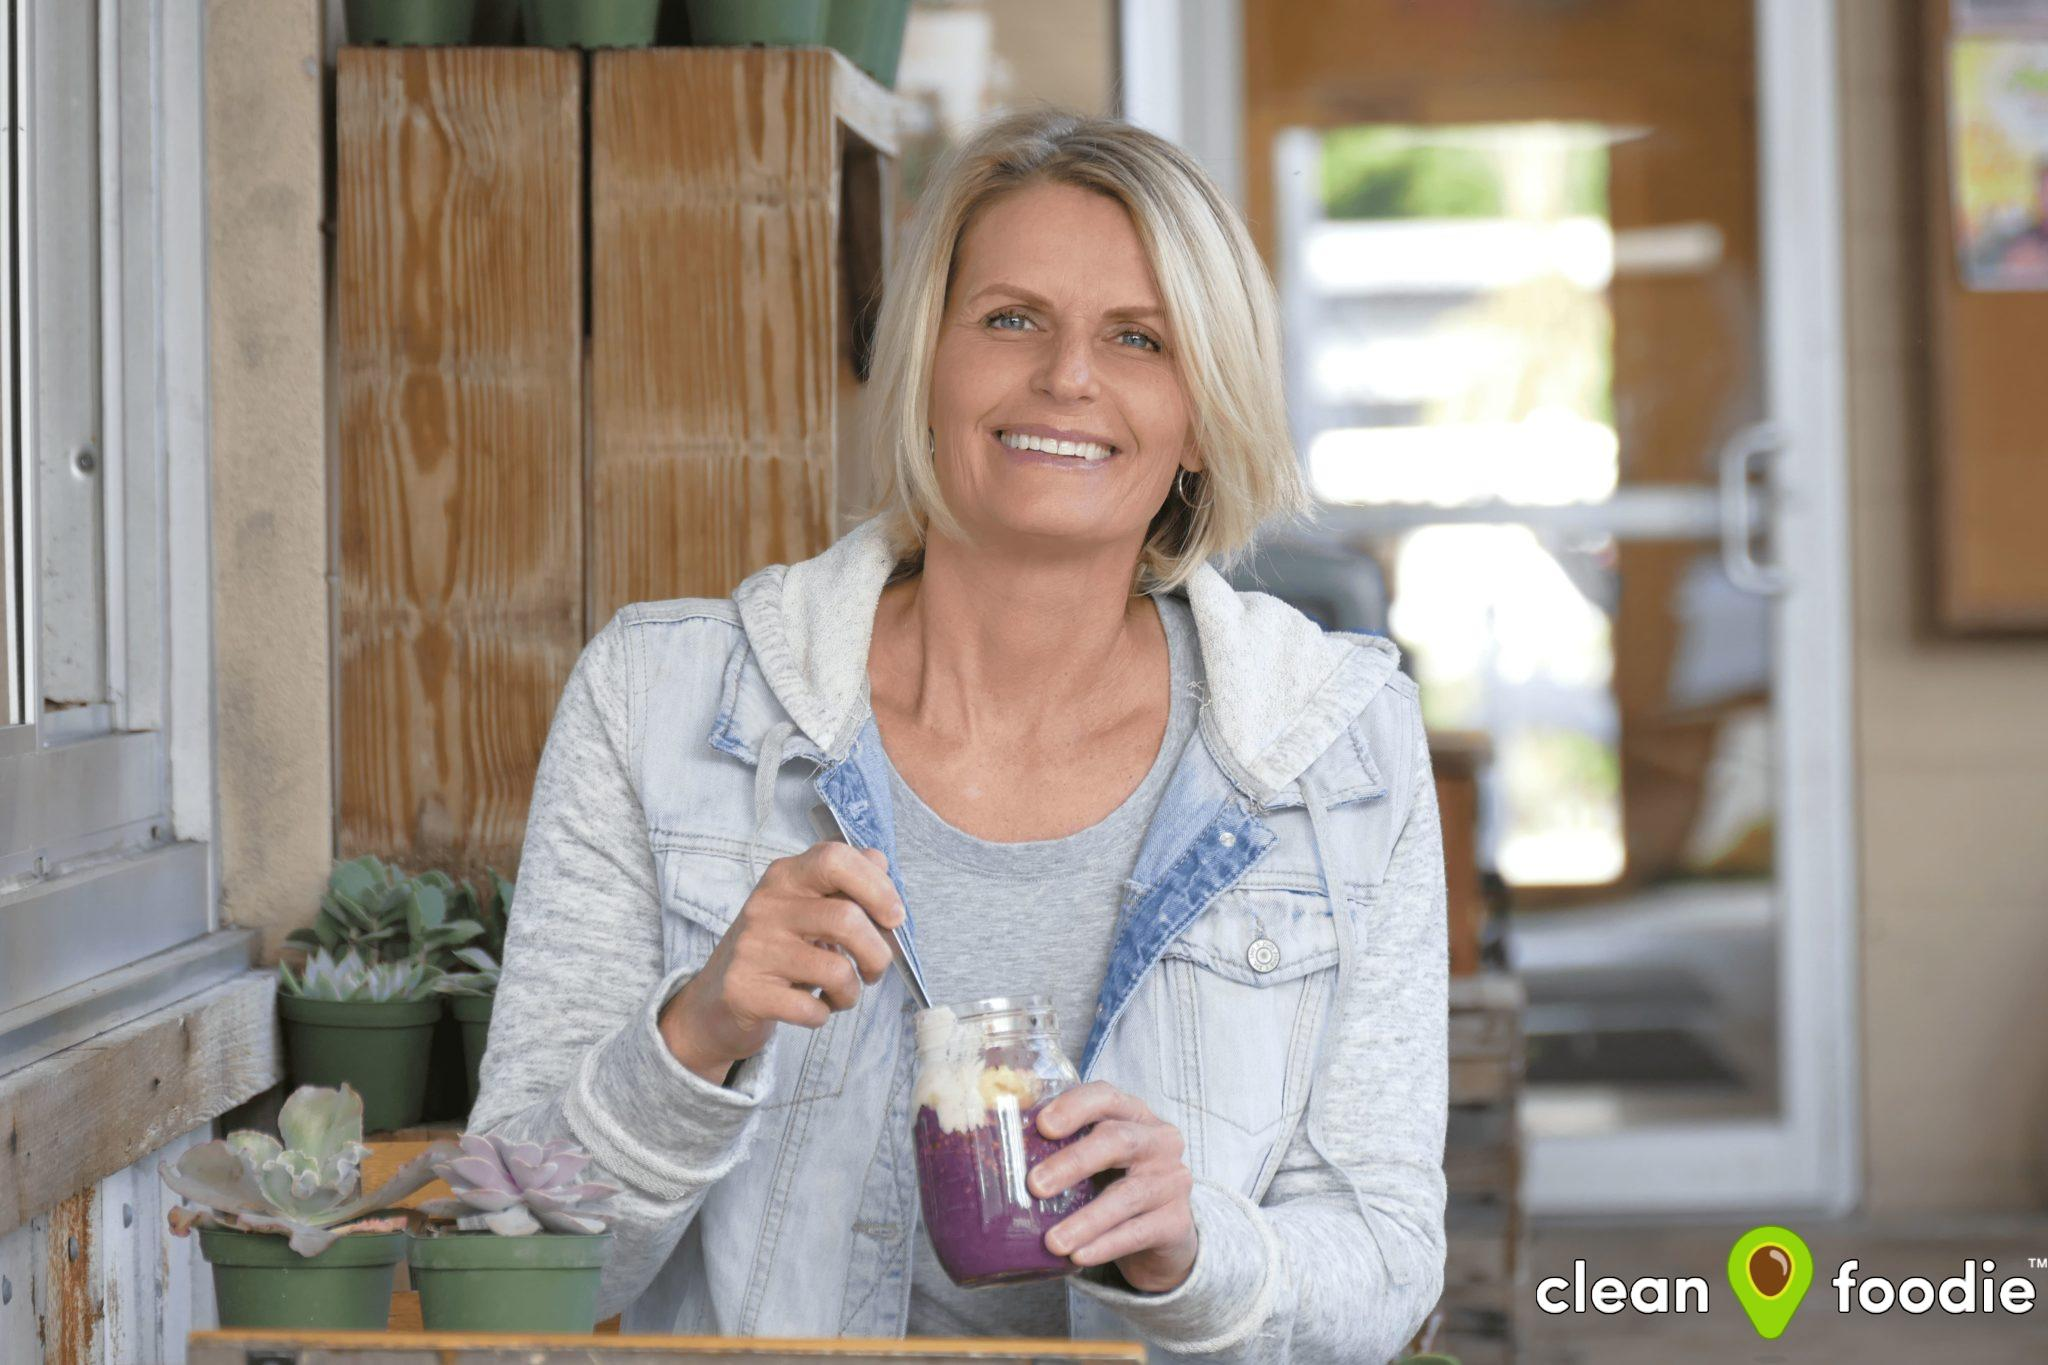 Irene Ouillette Clean Foodie